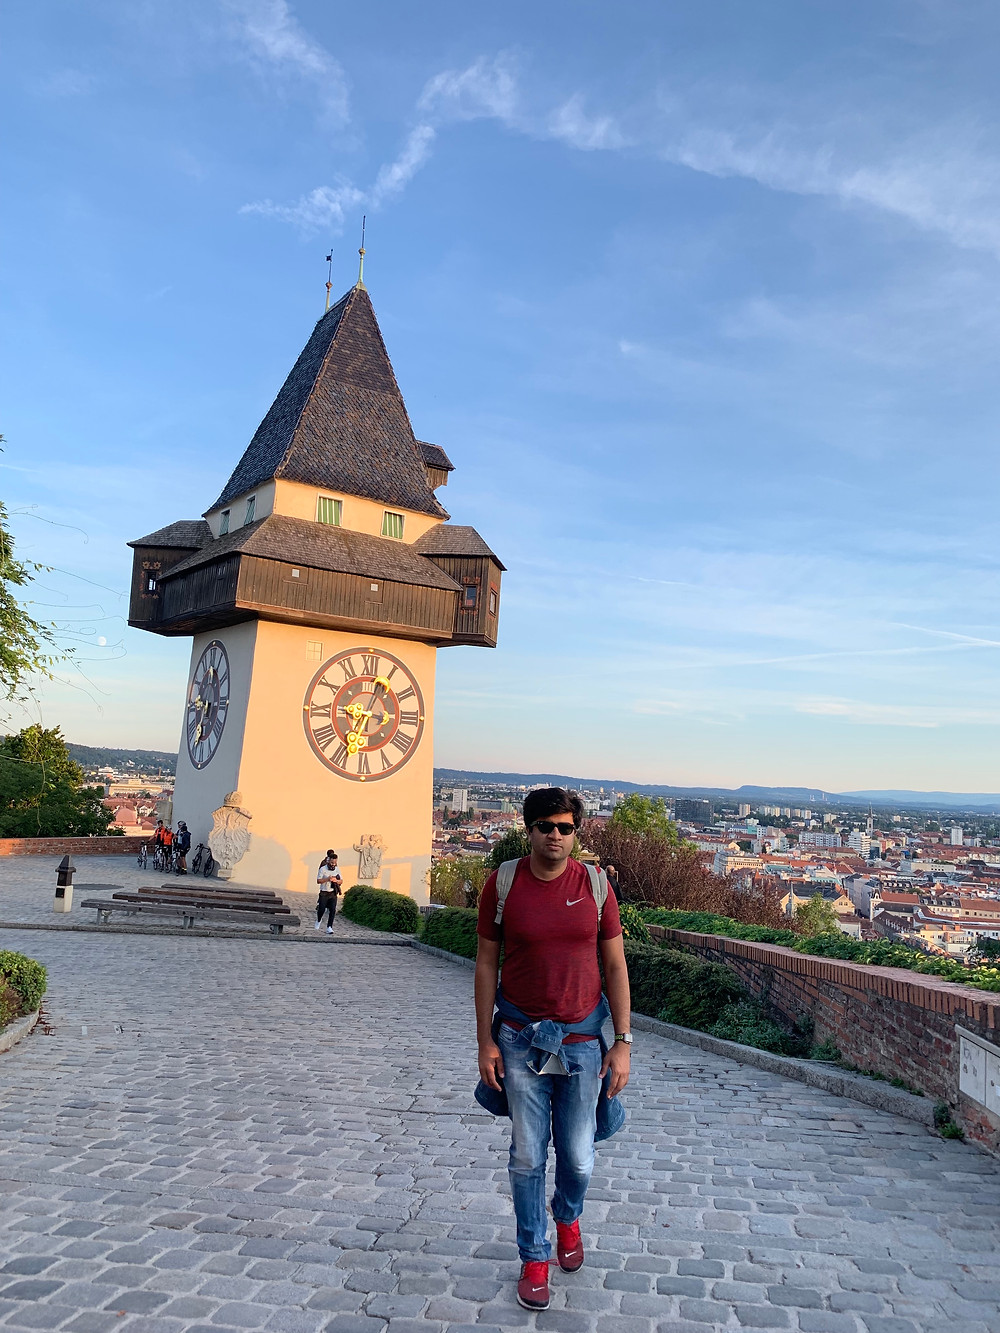 Uhr Turm (Clock Tower) in Graz, Austria